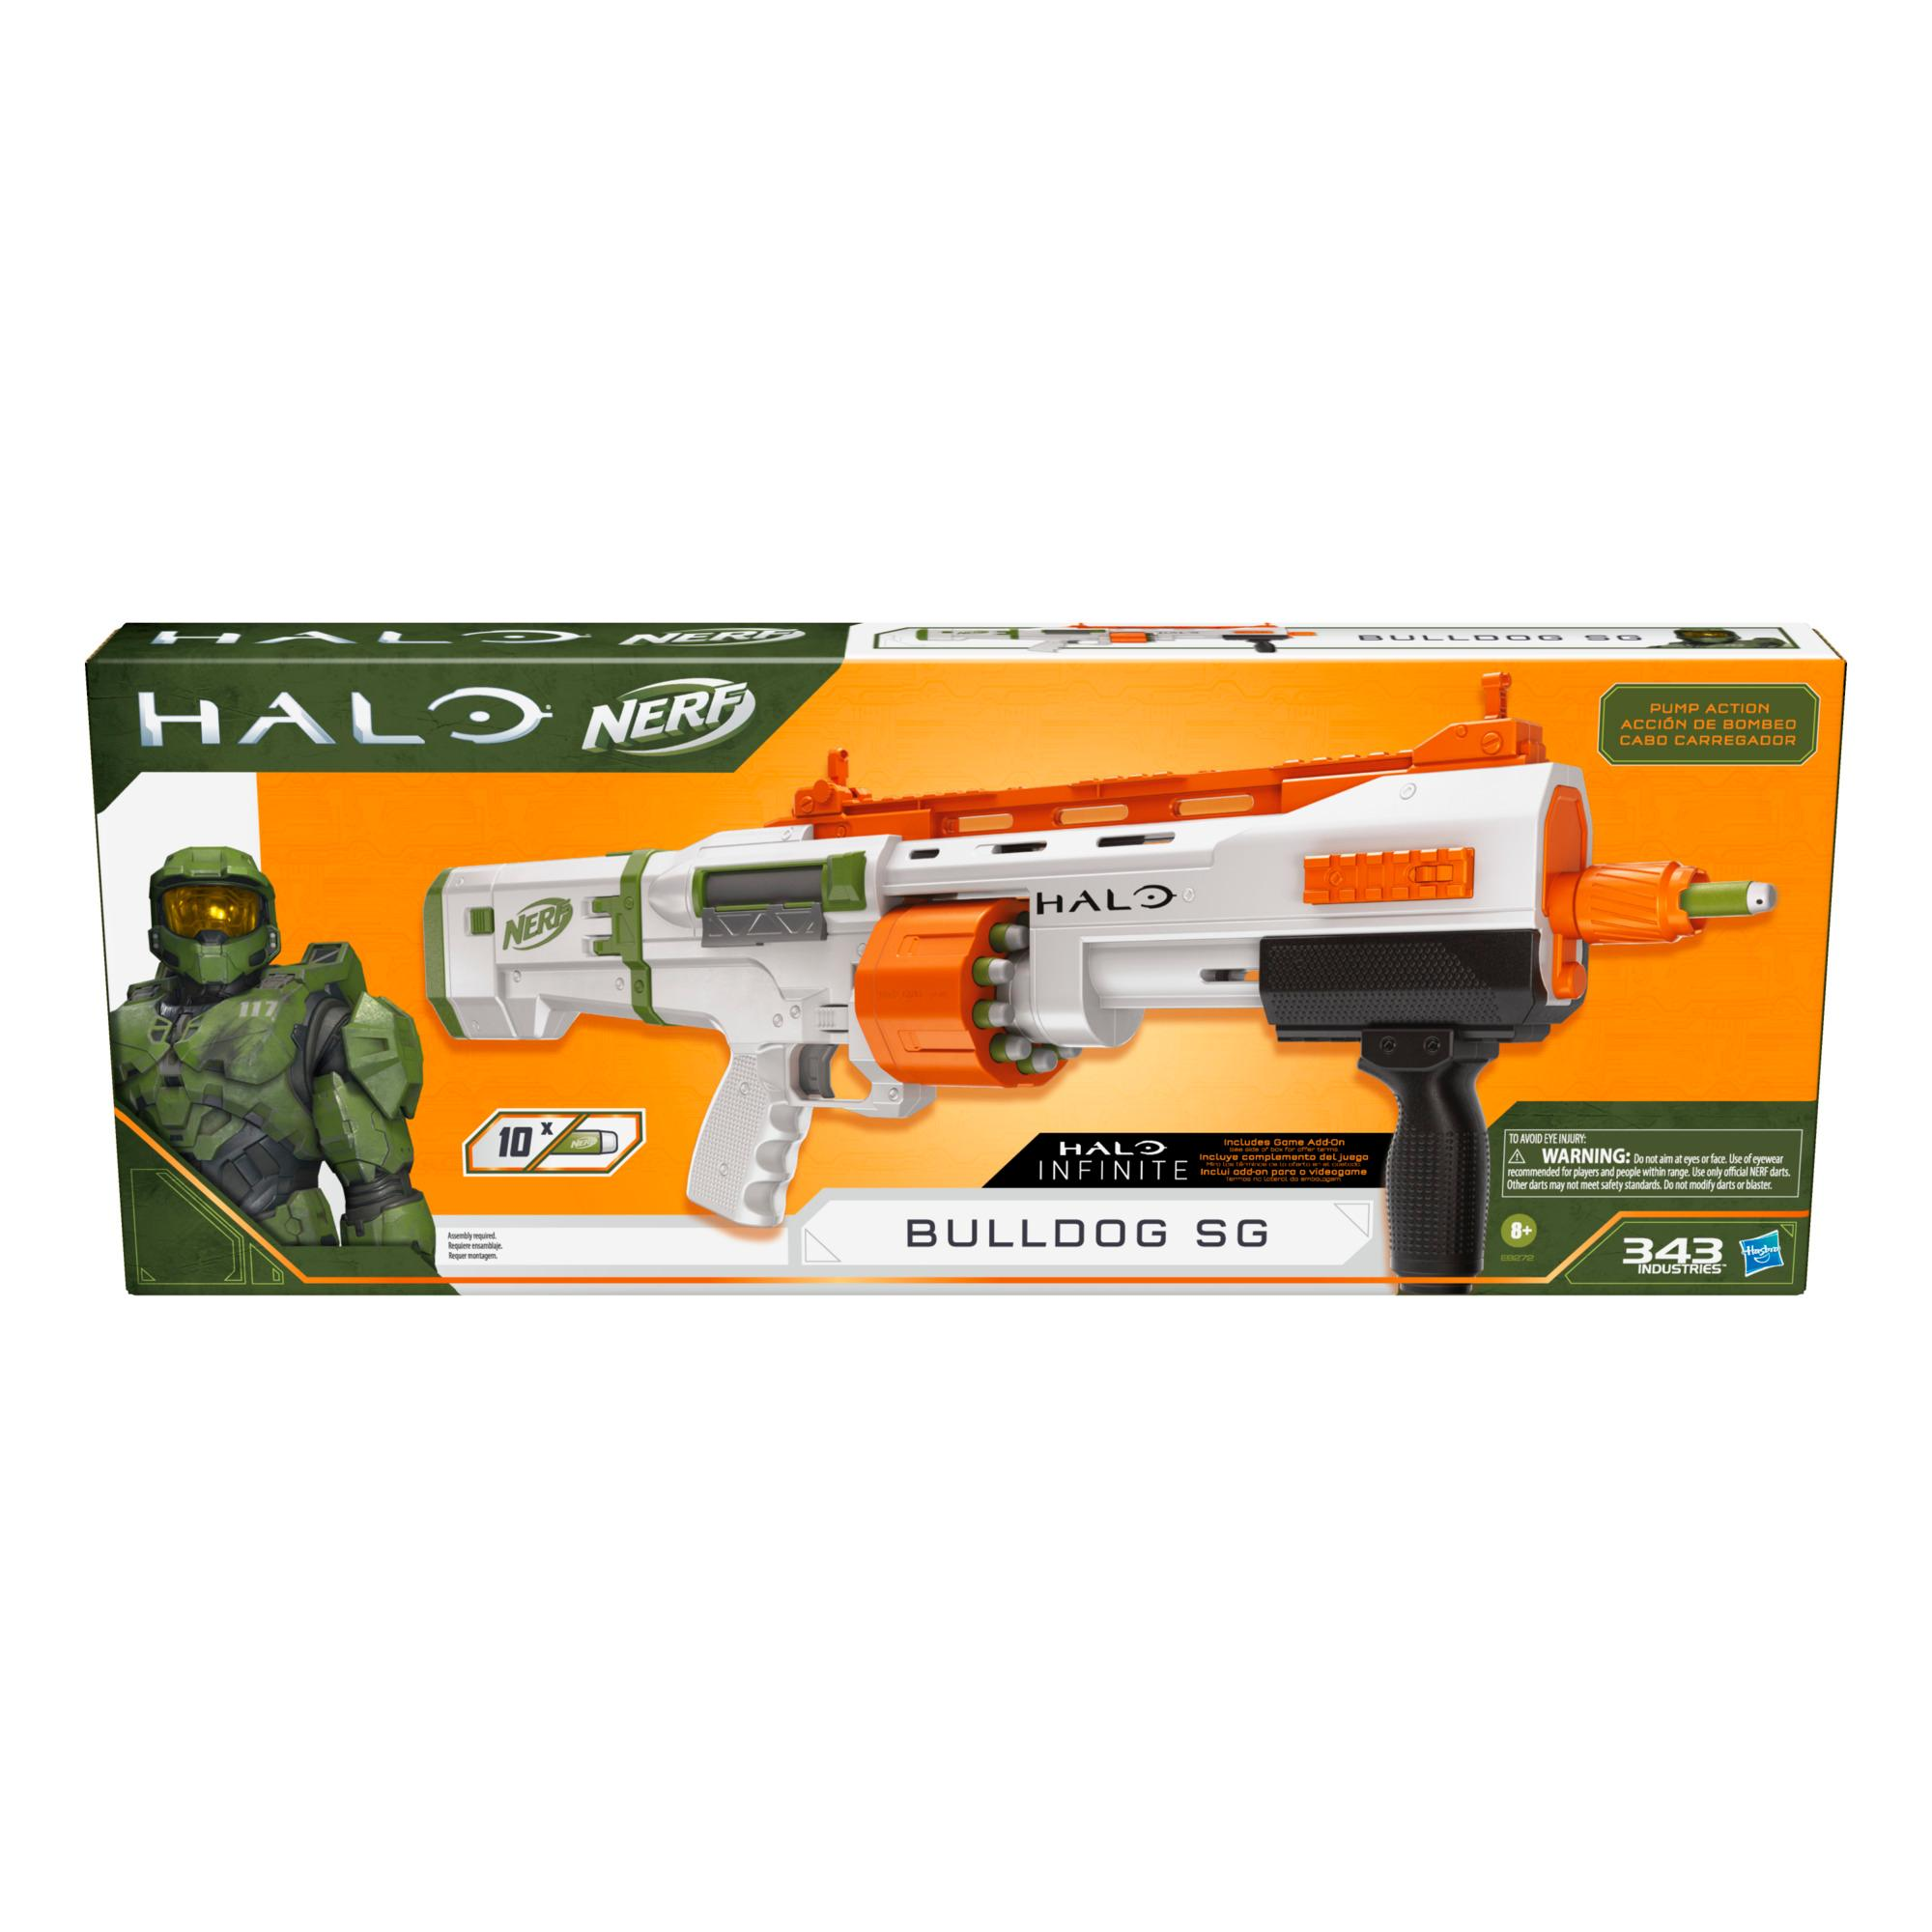 Nerf Halo Bulldog SG Dart Blaster -- Pump-Action, Rotating 10-Dart Drum, Tactical Rails, 10 Nerf Darts, Skin Unlock Code